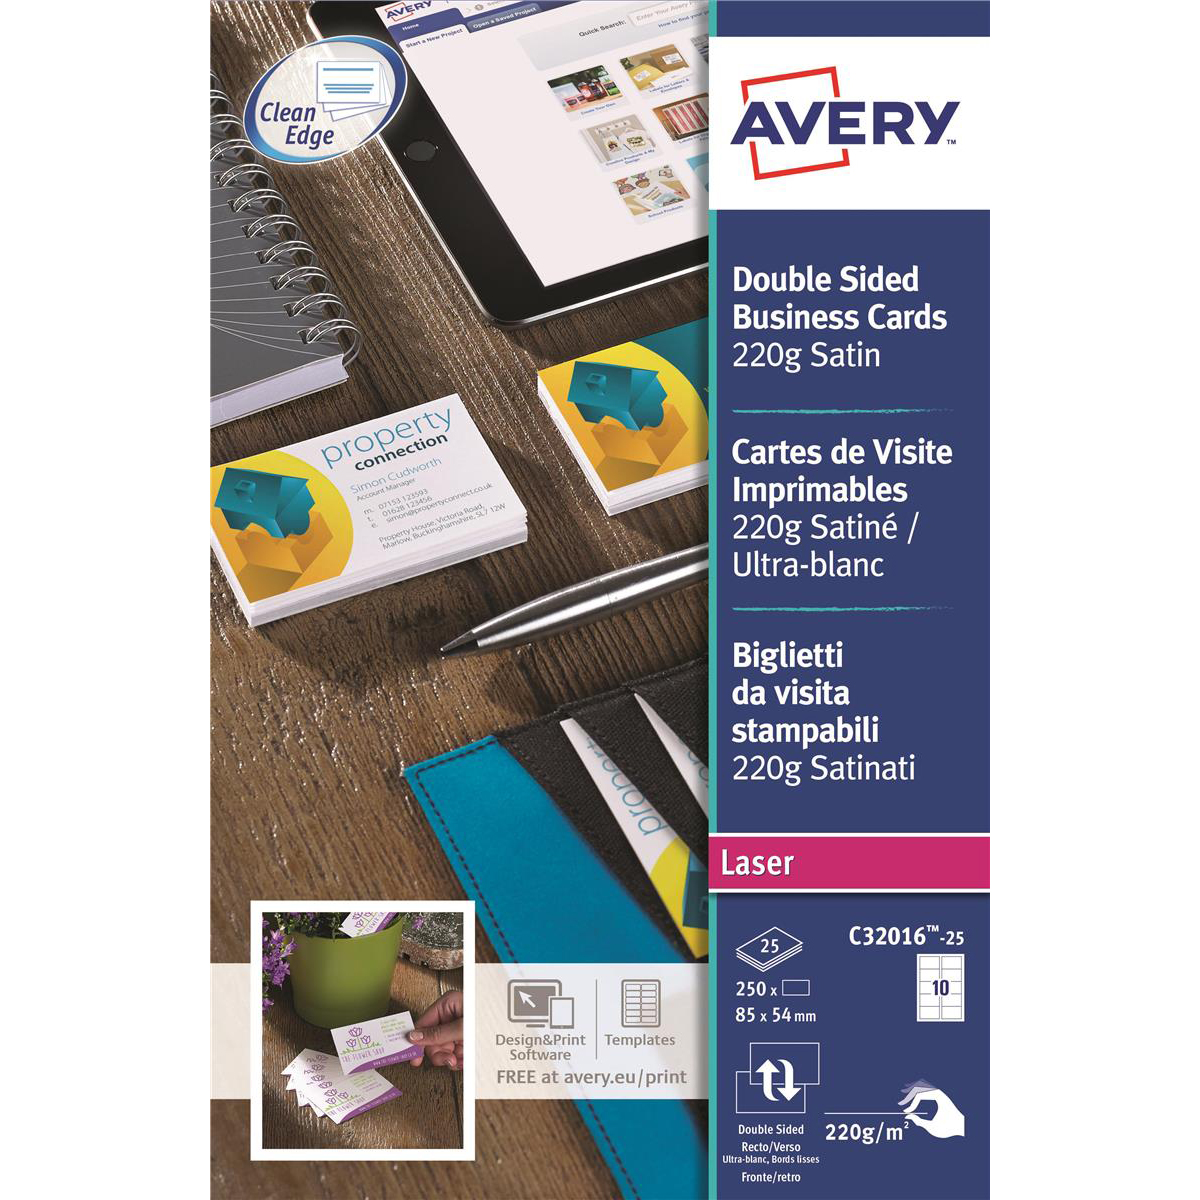 Avery quick and clean business cards laser 220gsm 10 per sheet satin avery quick and clean business cards laser 220gsm 10 per sheet satin colour ref c32016 25 250 cards reheart Images